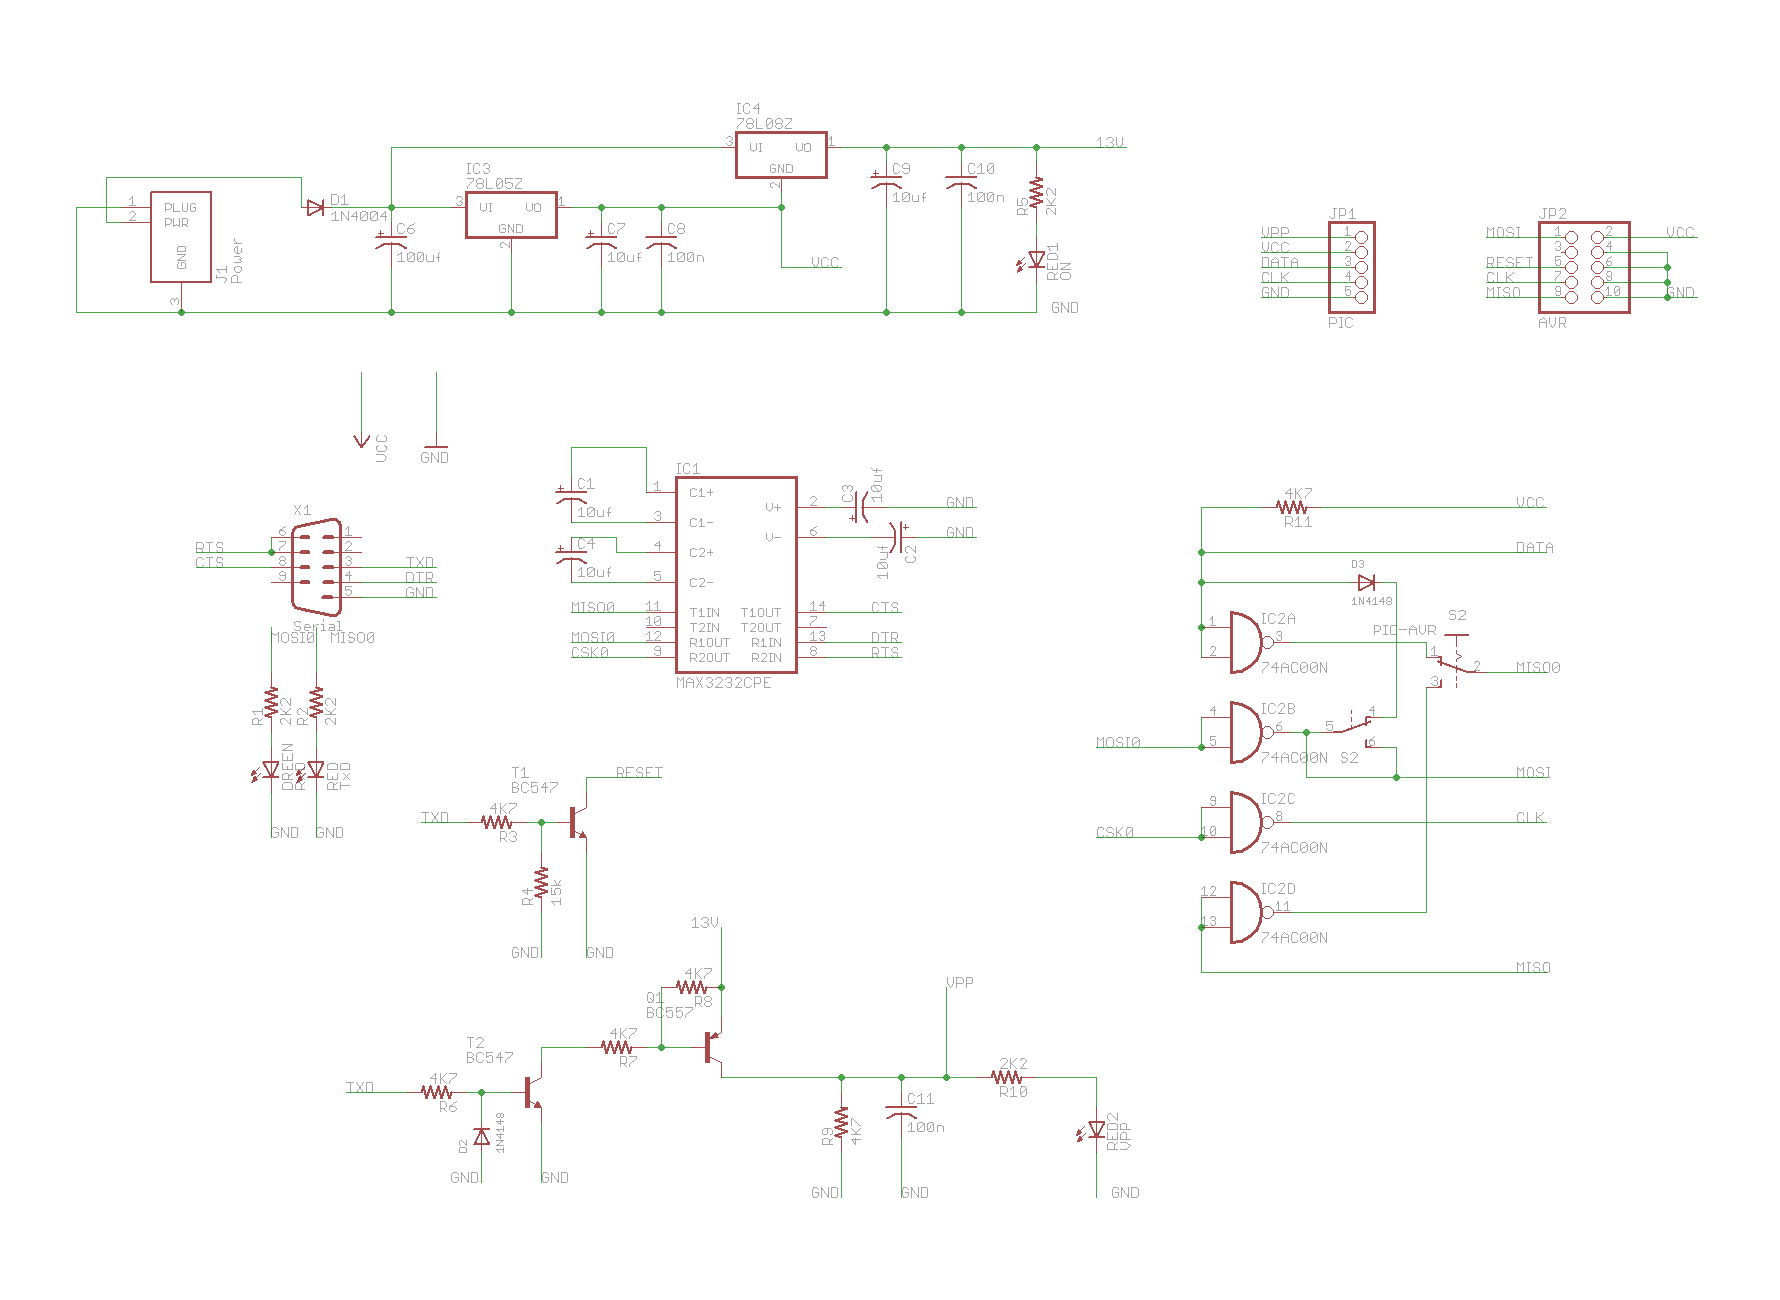 Serial Avr And Pic Programmer Electronics Lab Circuits Icsp In Circuit Programming Board Based On Pic16f84 Schematic